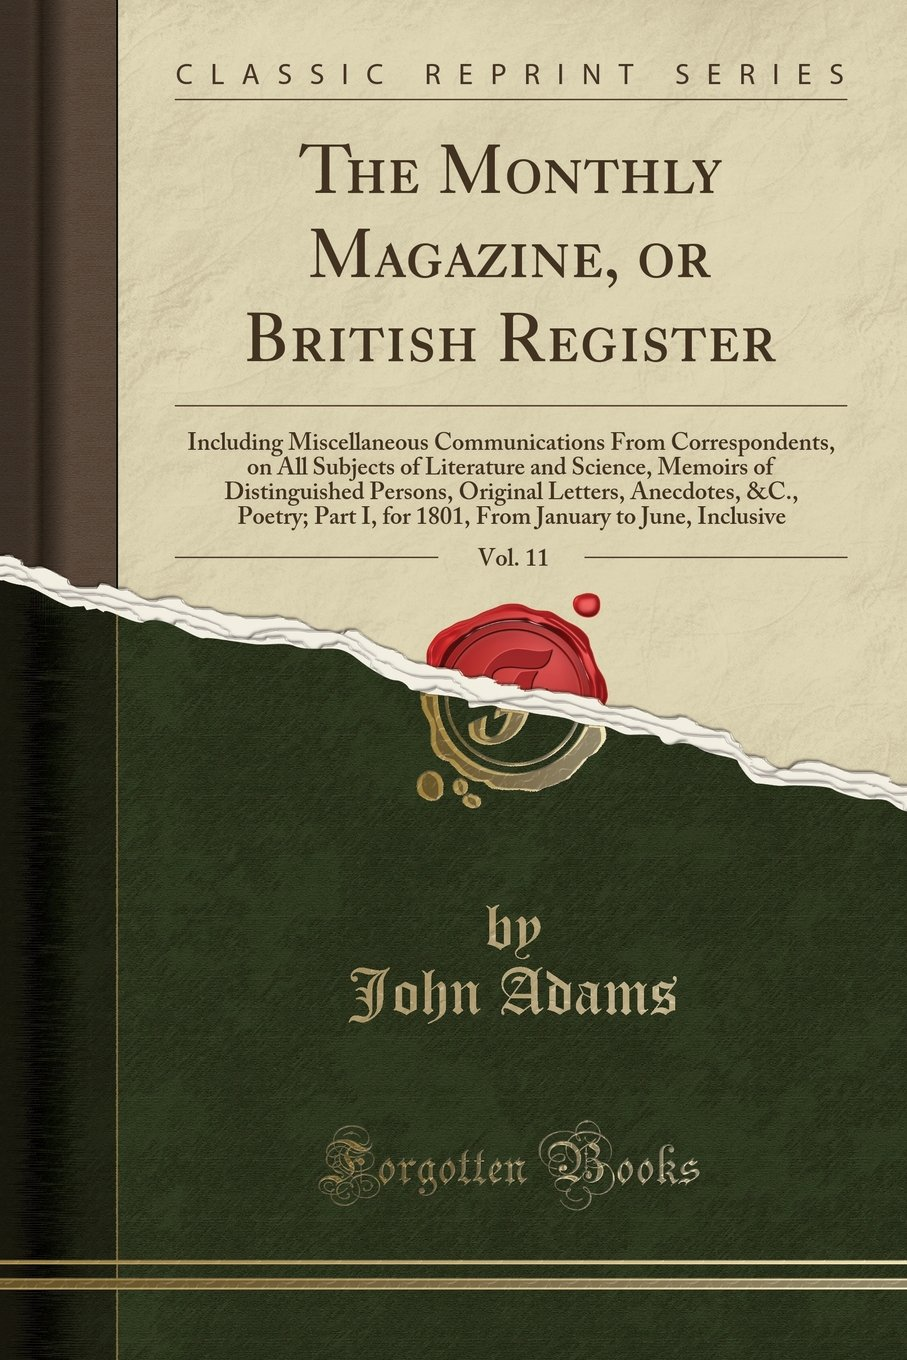 The Monthly Magazine, or British Register, Vol. 11: Including Miscellaneous Communications From Correspondents, on All Subjects of Literature and ... &C., Poetry; Part I, for 1801, From J PDF